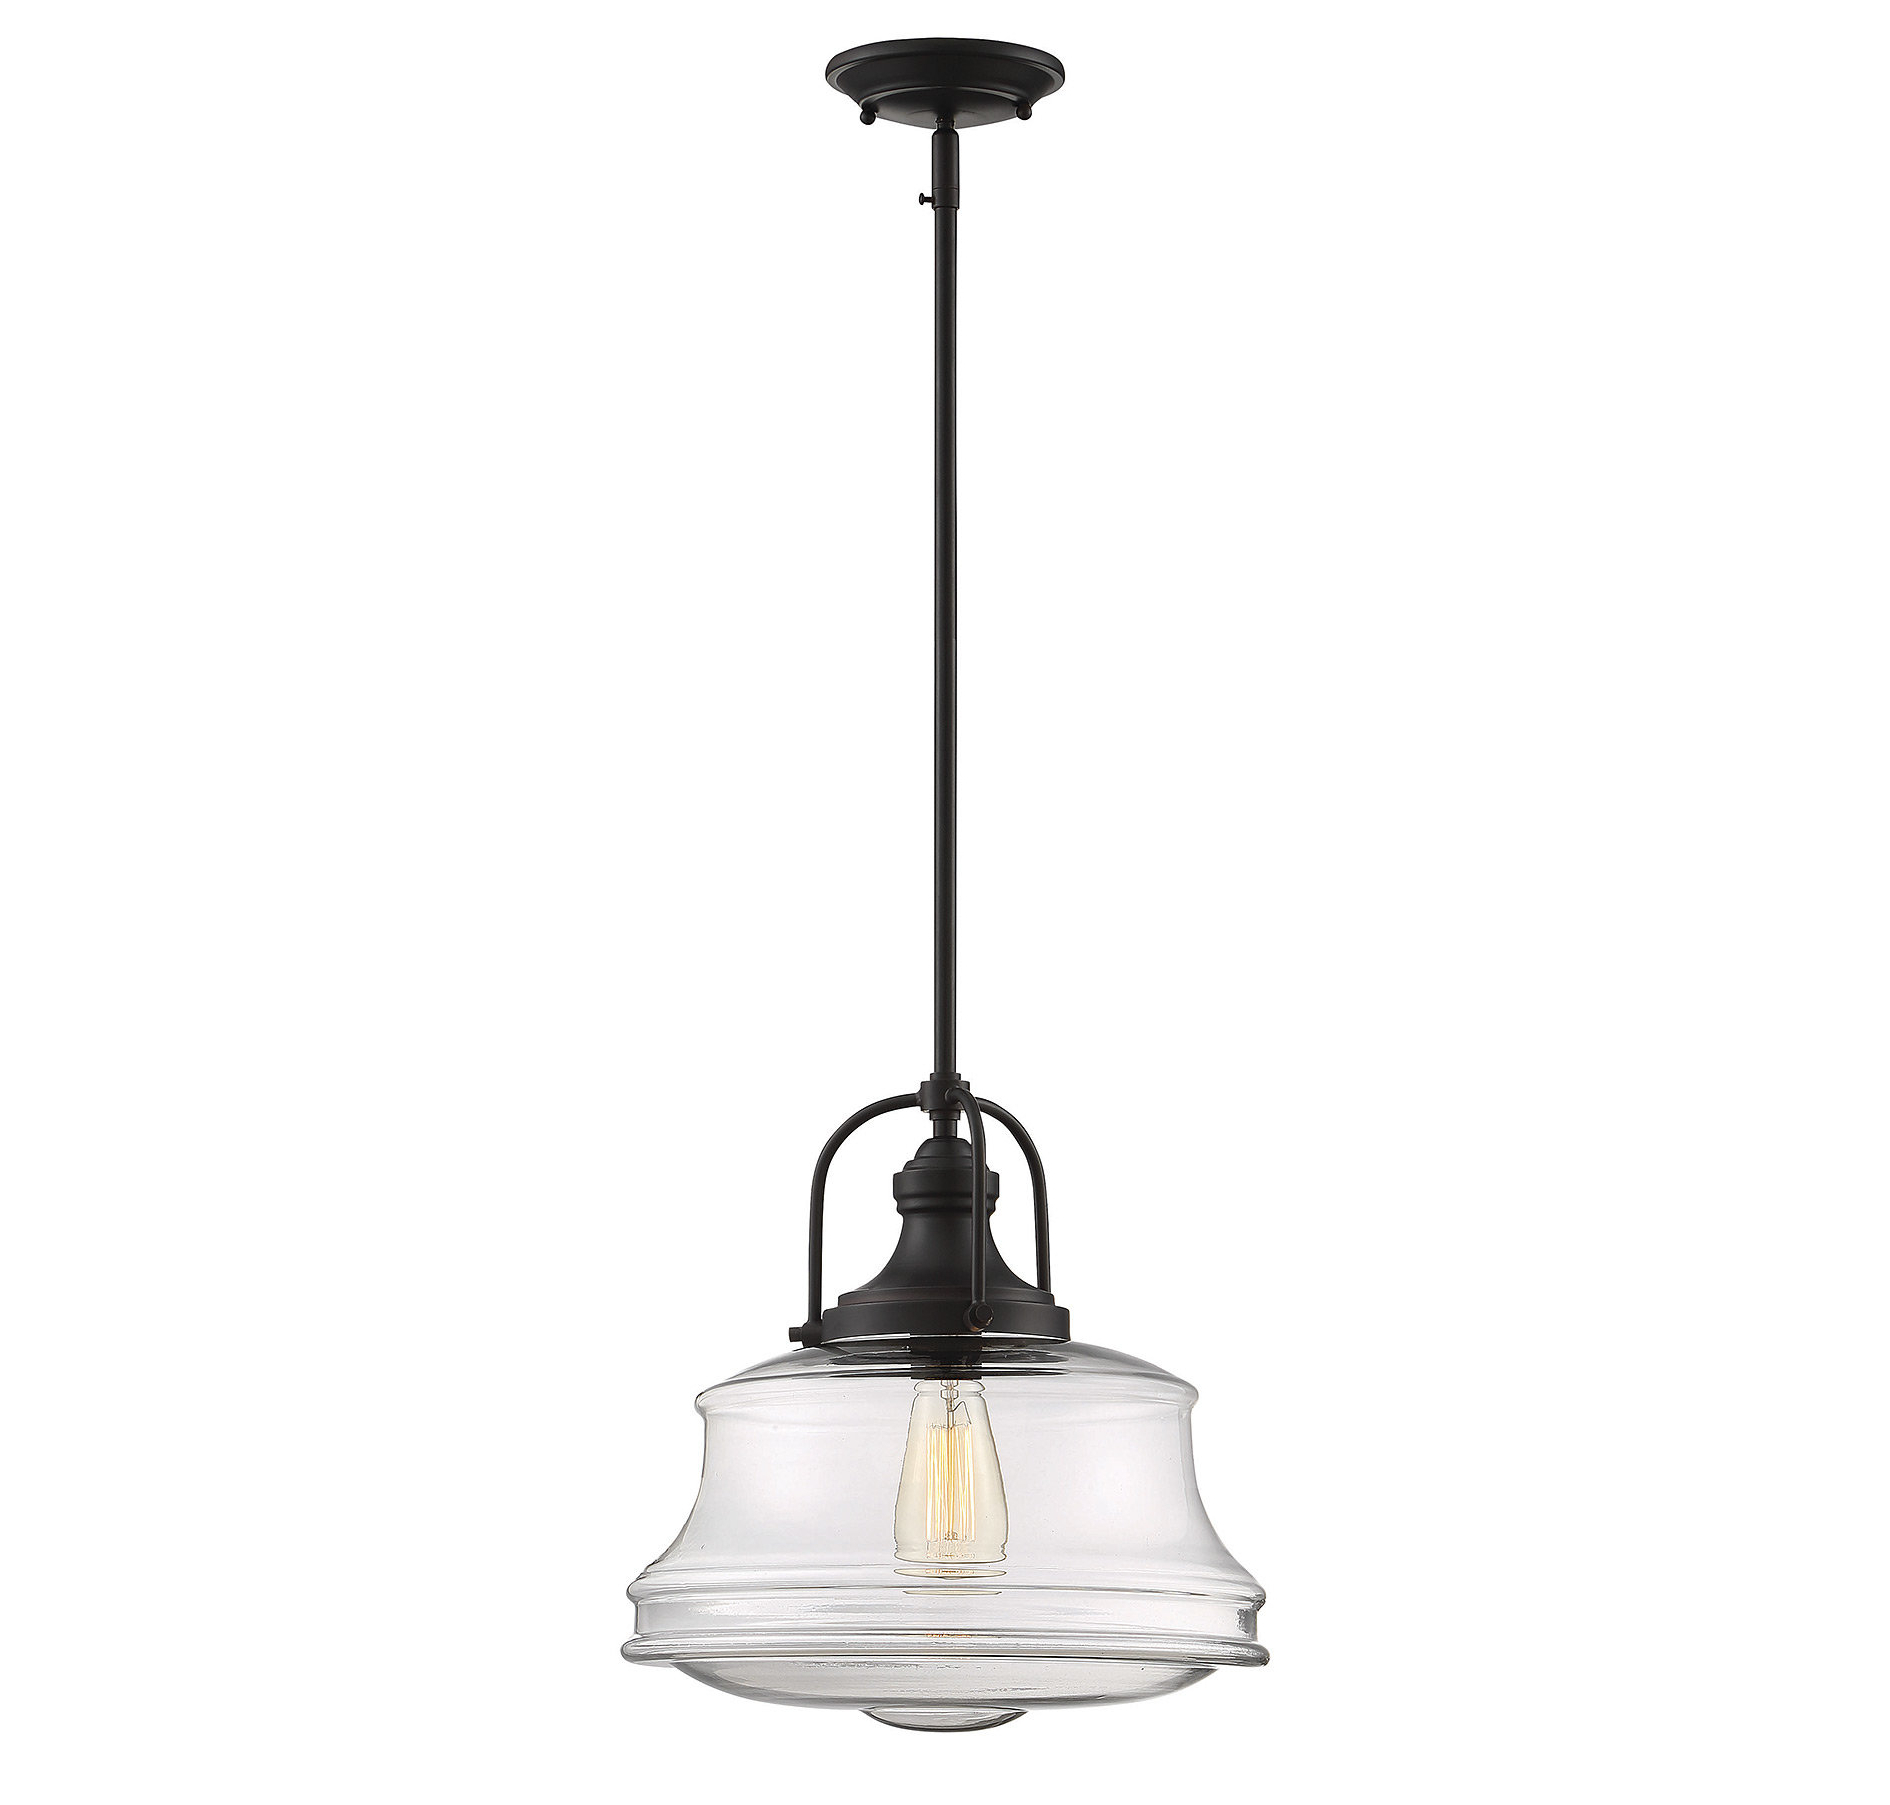 2020 Adriana Black 1 Light Single Dome Pendants Throughout Modern Farmhouse Pendant Lighting You'll Love In  (View 1 of 25)